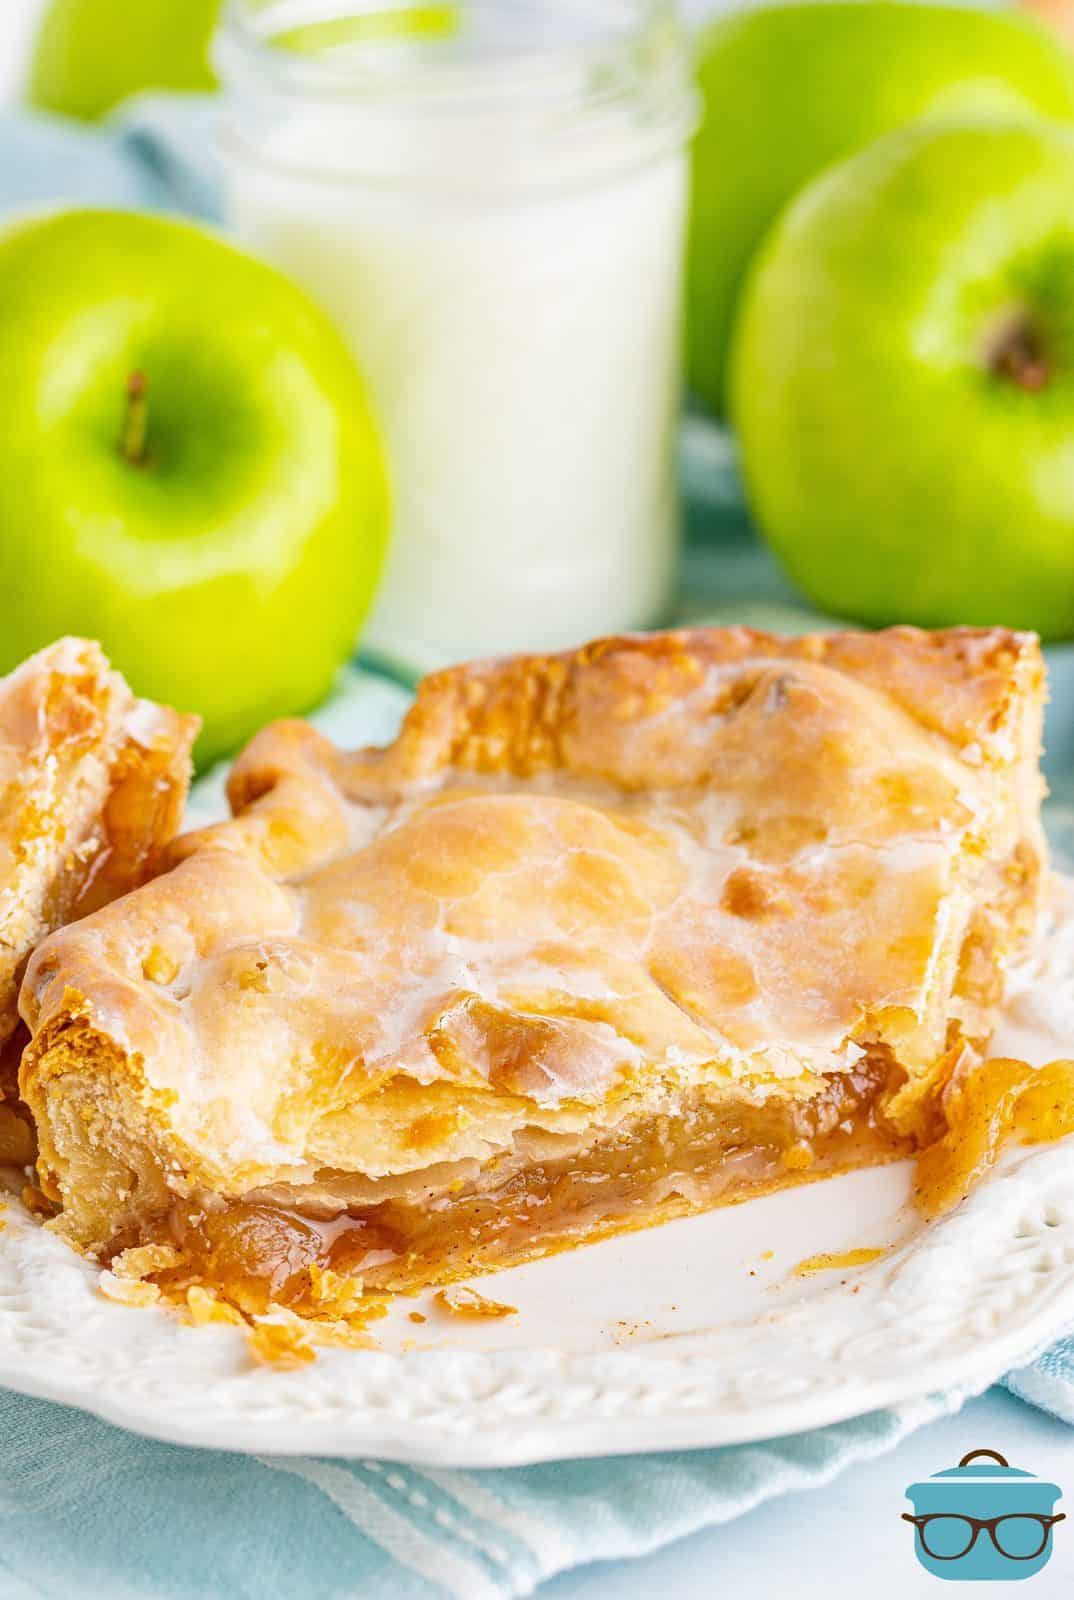 Slice of Apple Slab Pie on white plate with bite taken out showing inside.